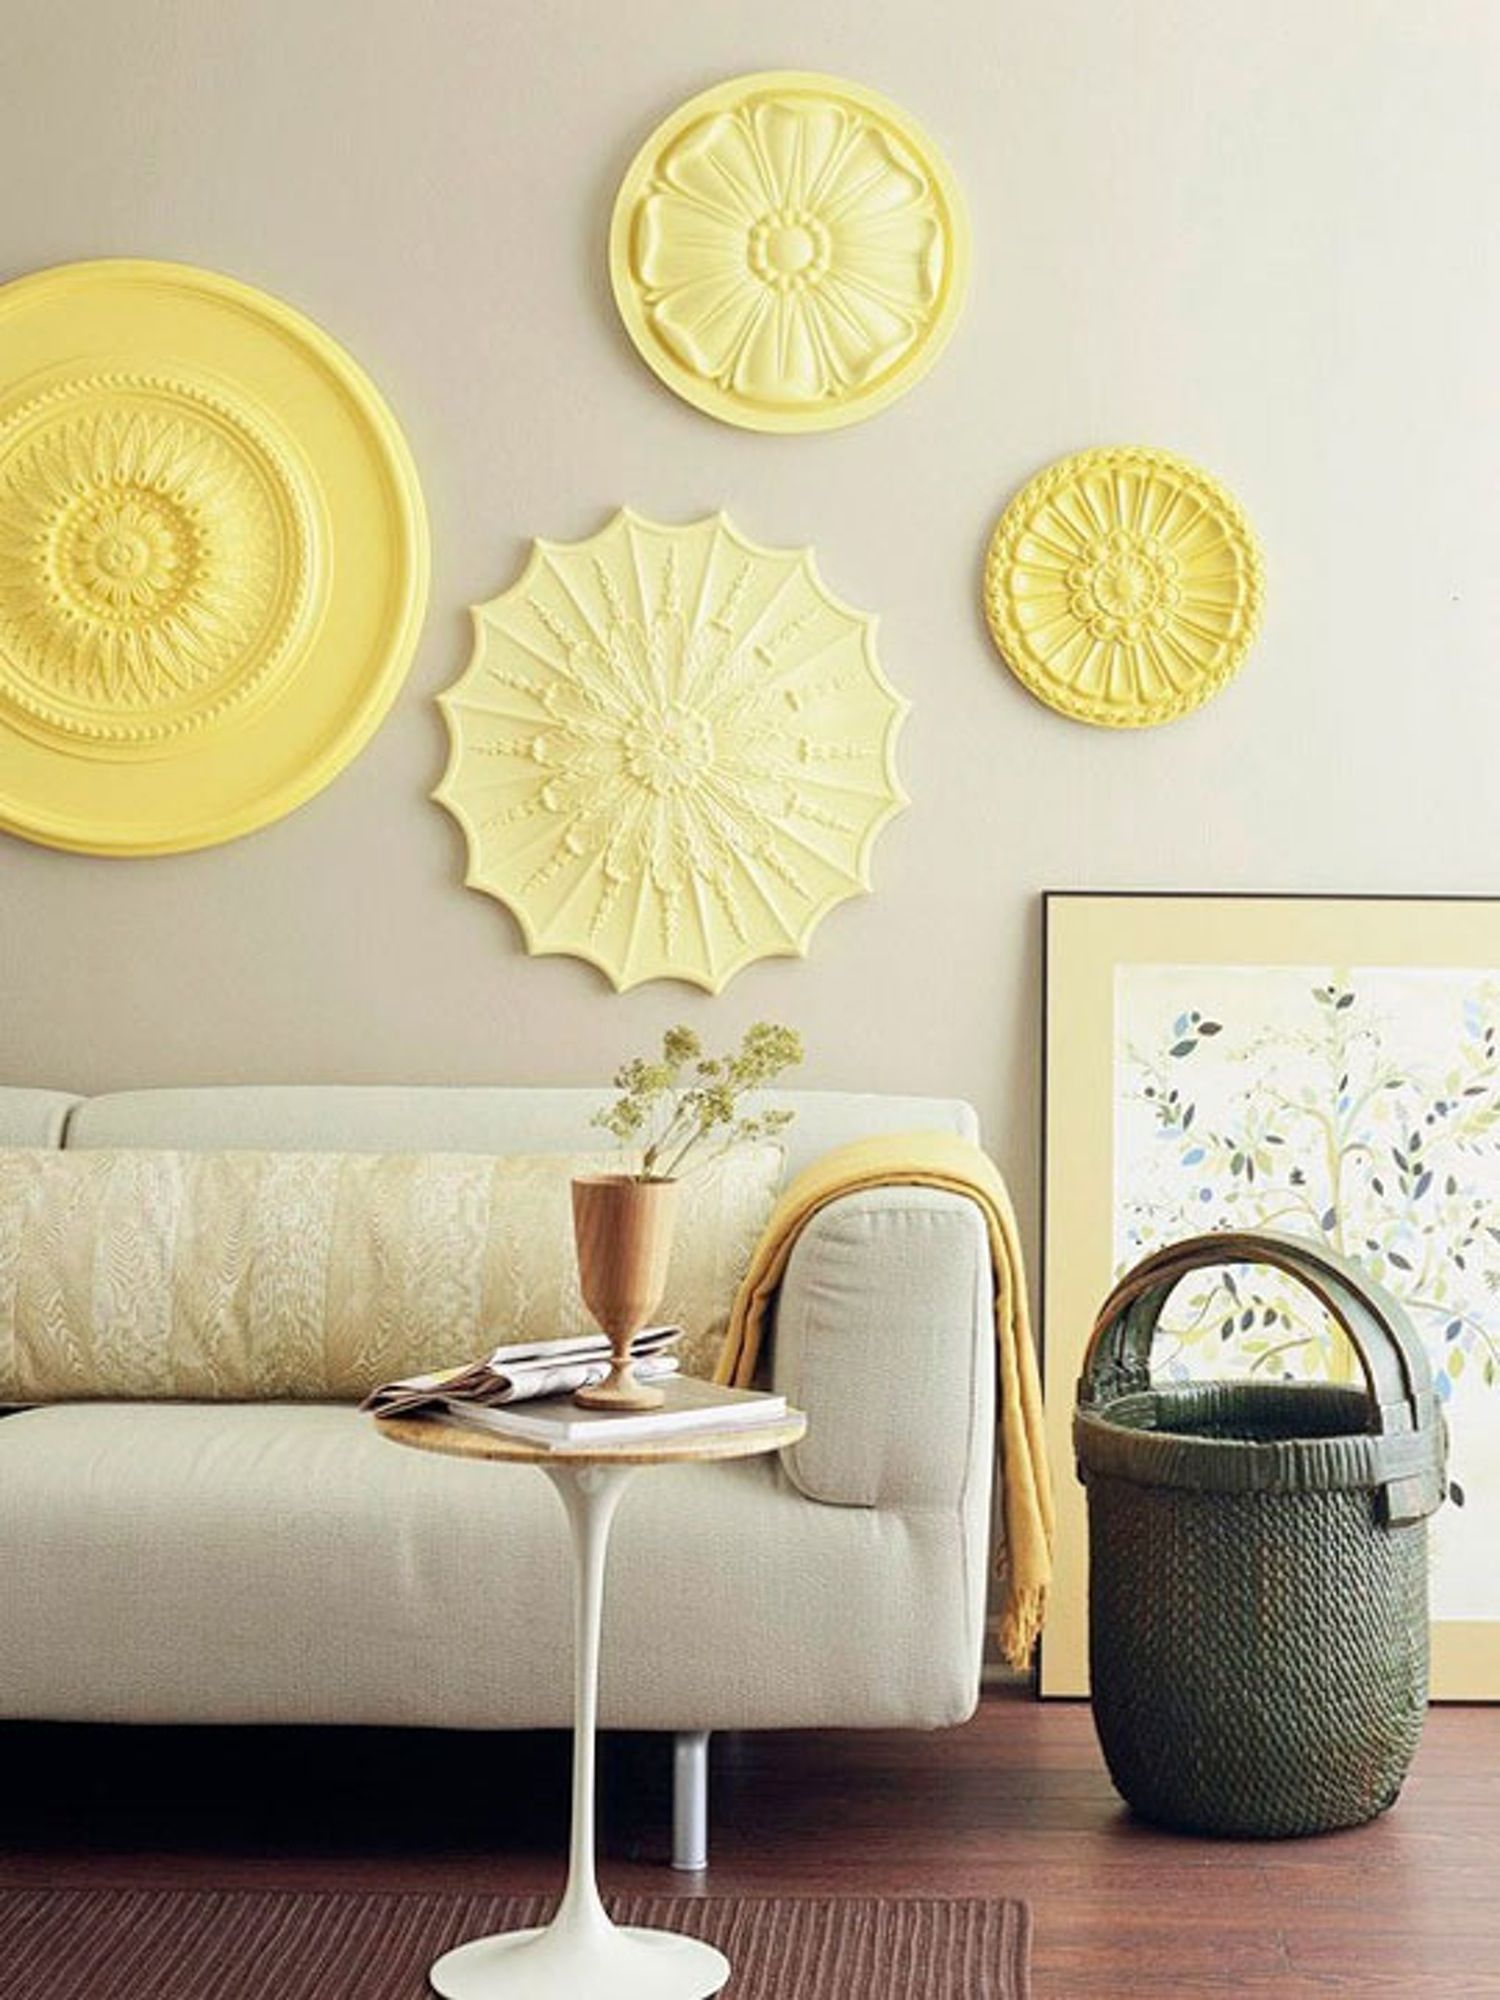 Why Didn\'t I Think of That? 10 DIY Ideas from Pinterest | technology ...